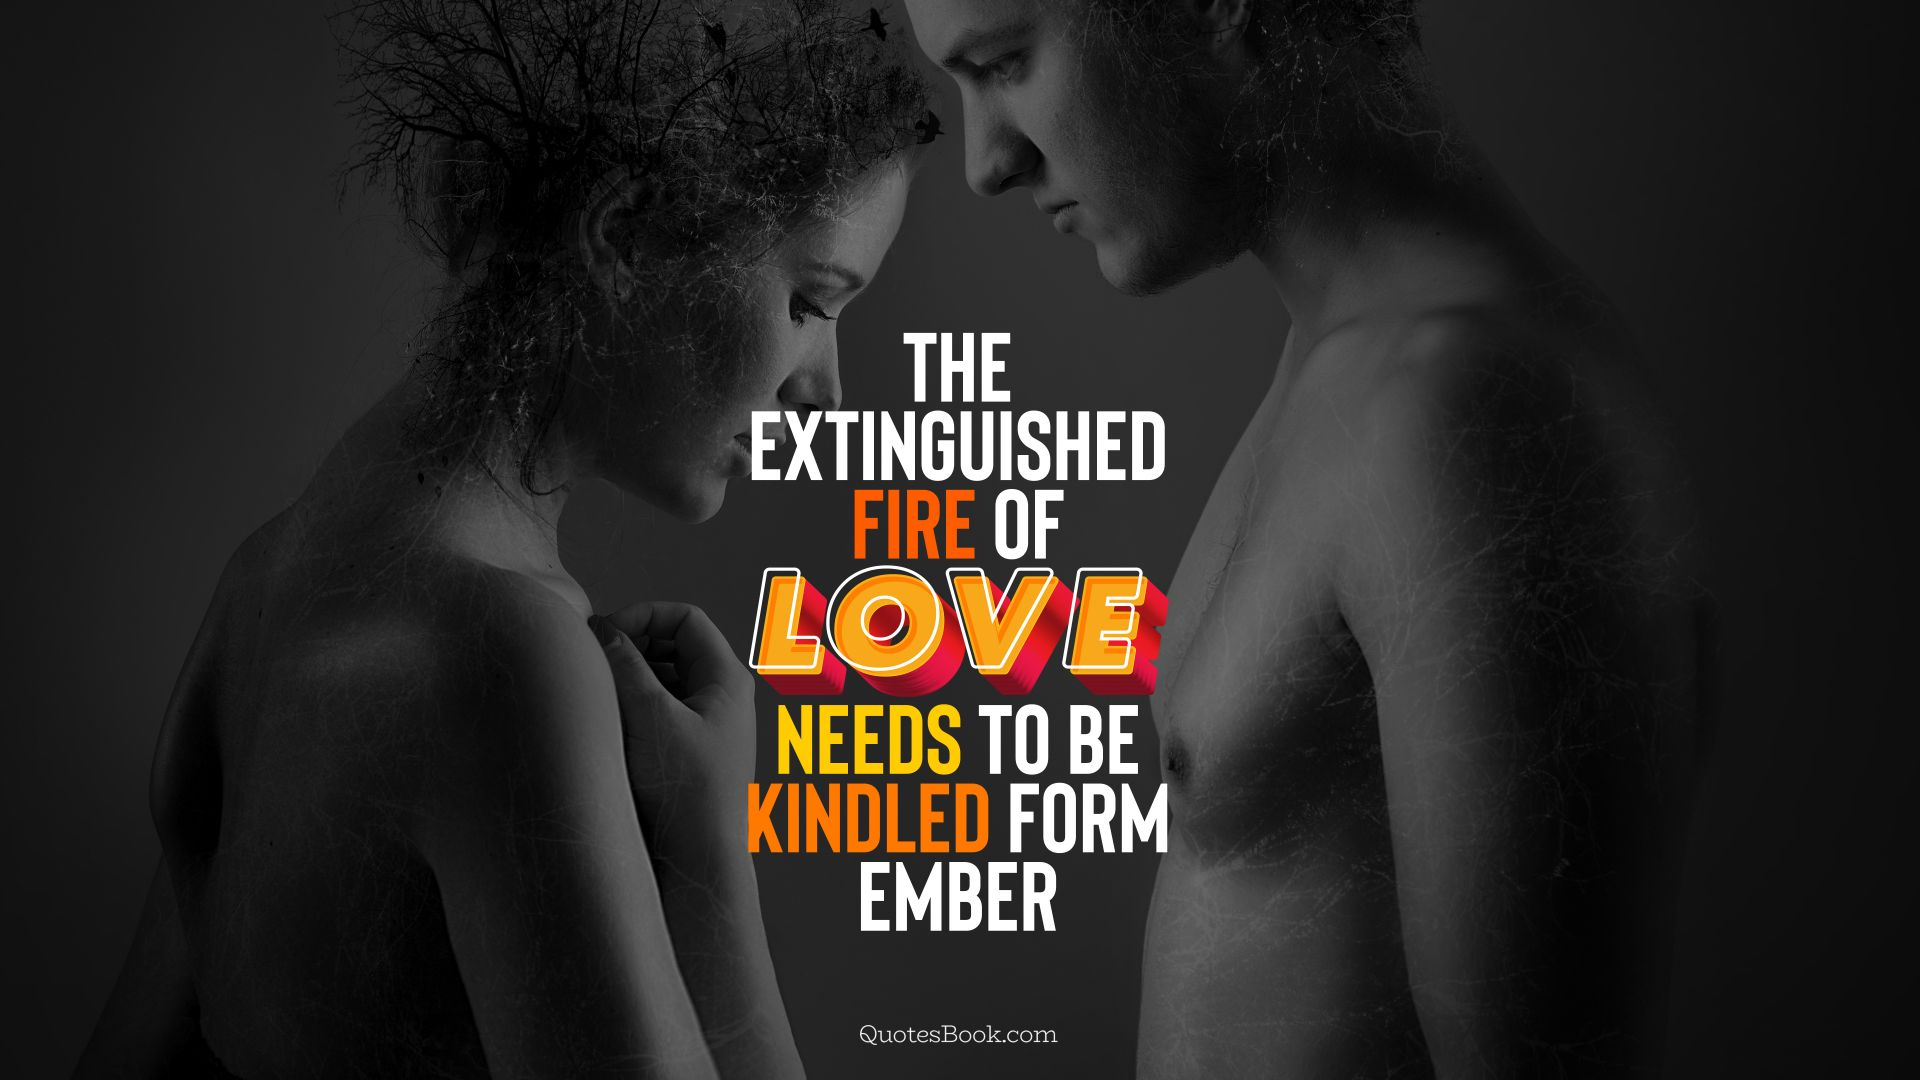 The extinguished fire of love needs to be kindled form ember. - Quote by QuotesBook